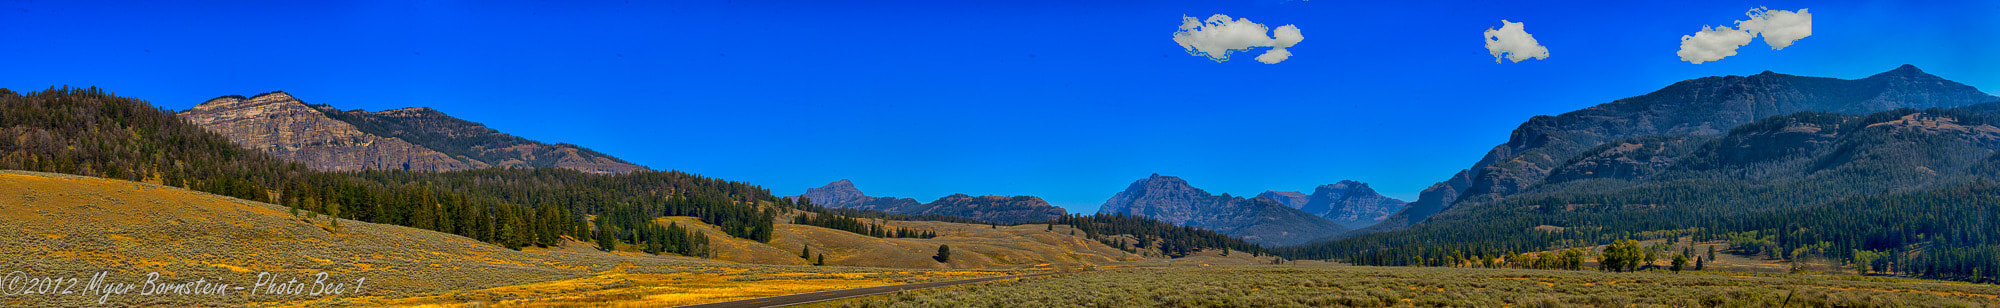 Photograph Lamar Valley by Myer Bornstein on 500px